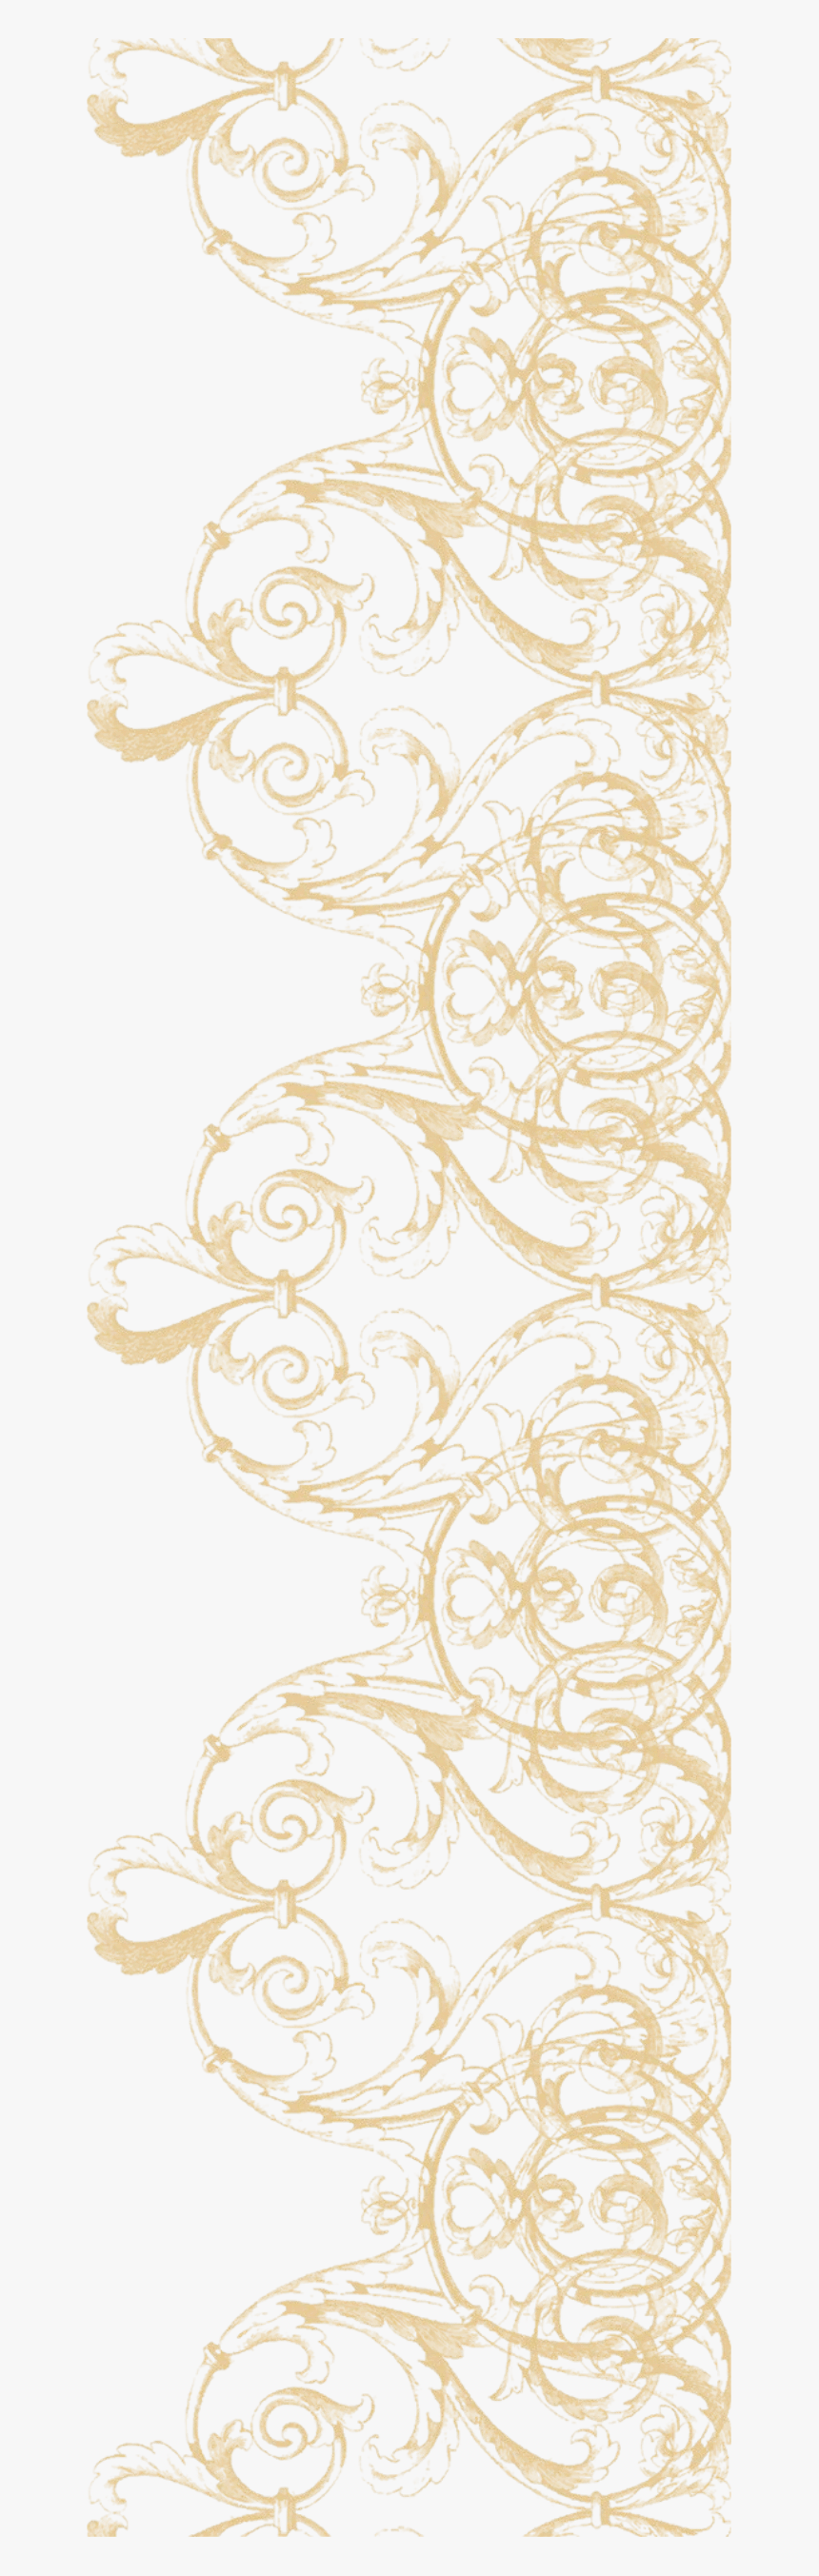 Transparent Lace Pattern Png - Lace Border Clipart Png, Png Download, Free Download